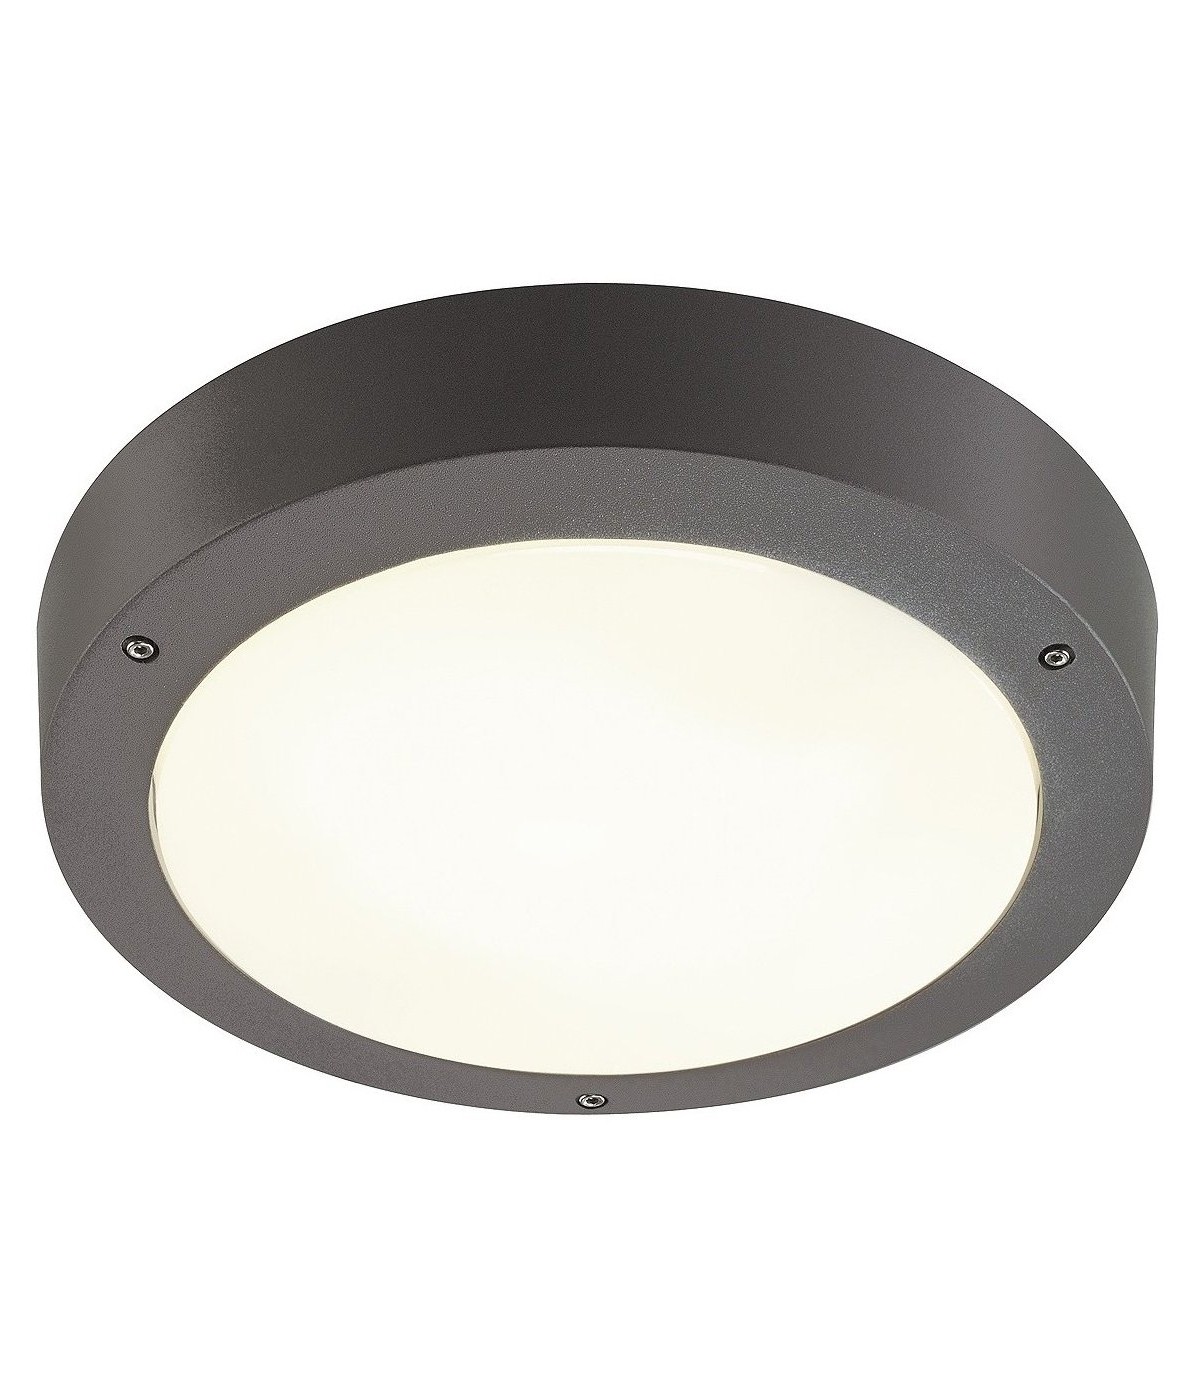 Famous Outdoor Ceiling Lights With Pir Throughout Led Outdoor Ceiling Light With Pir • Ceiling Lights (View 6 of 20)